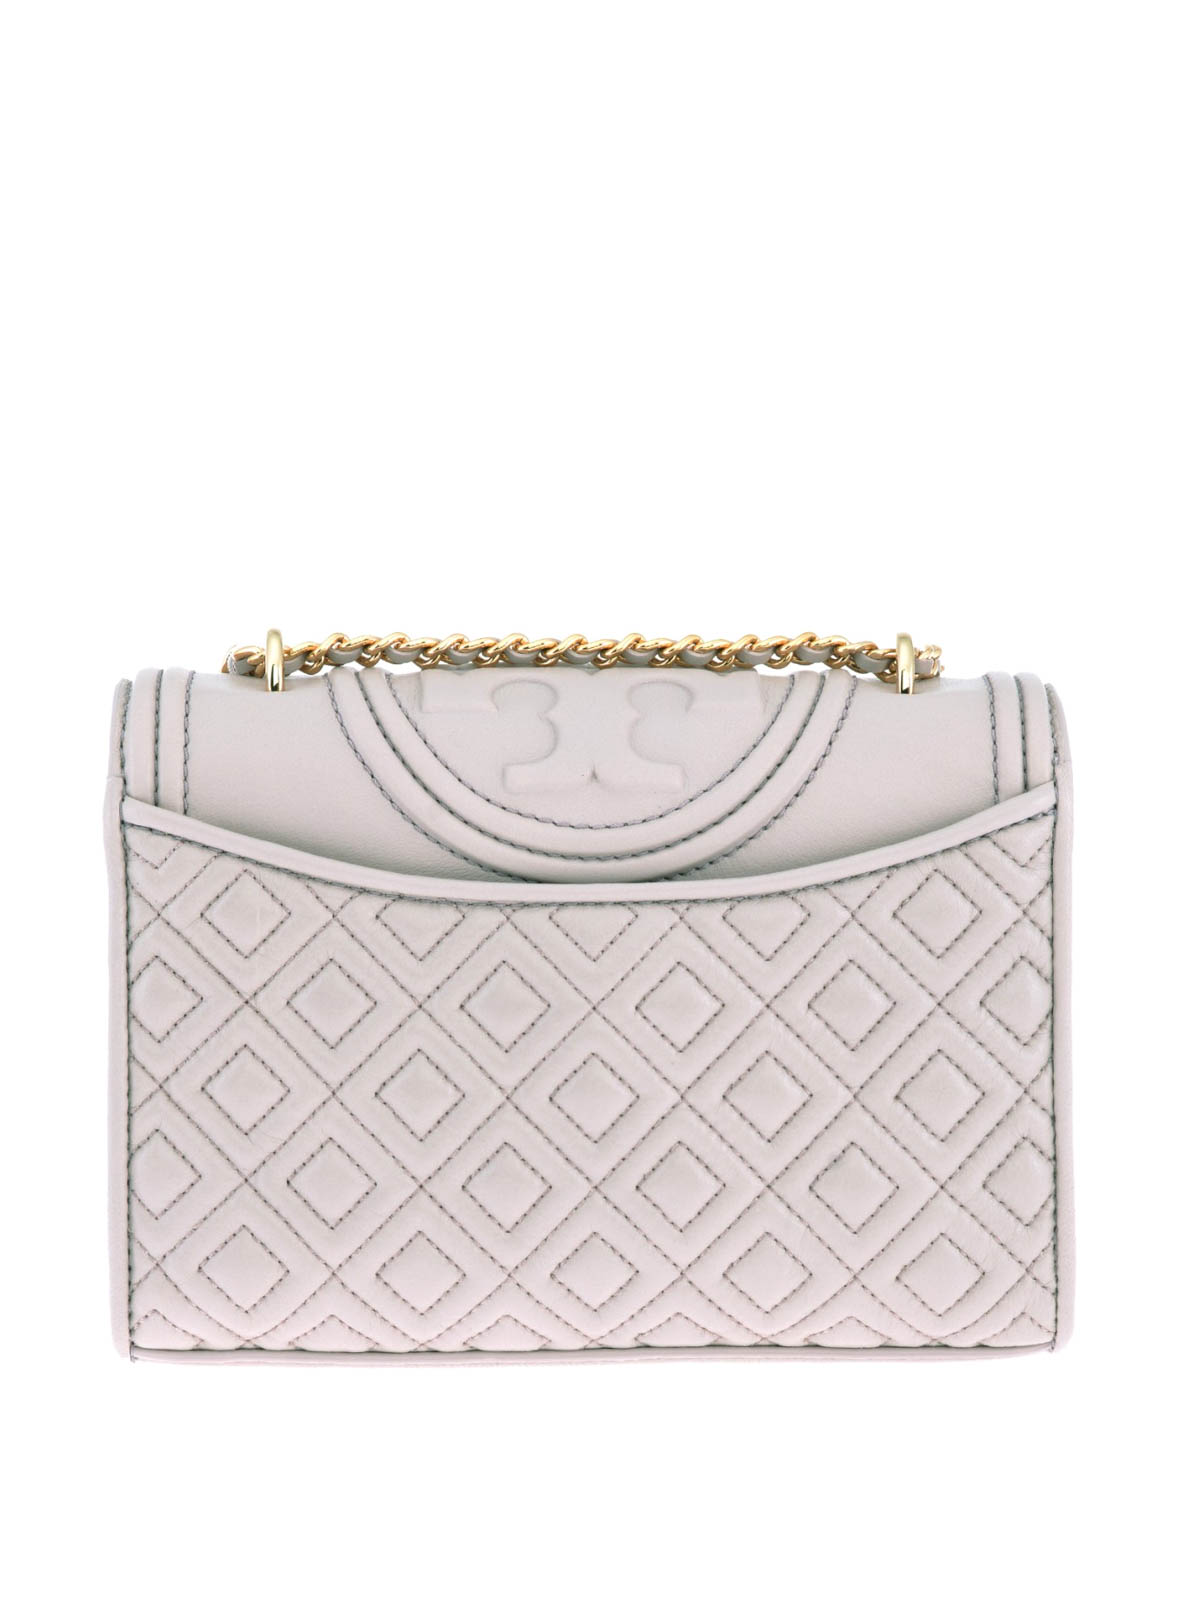 bc702bf1479 iKRIX TORY BURCH  shoulder bags - Fleming quilted leather small bag